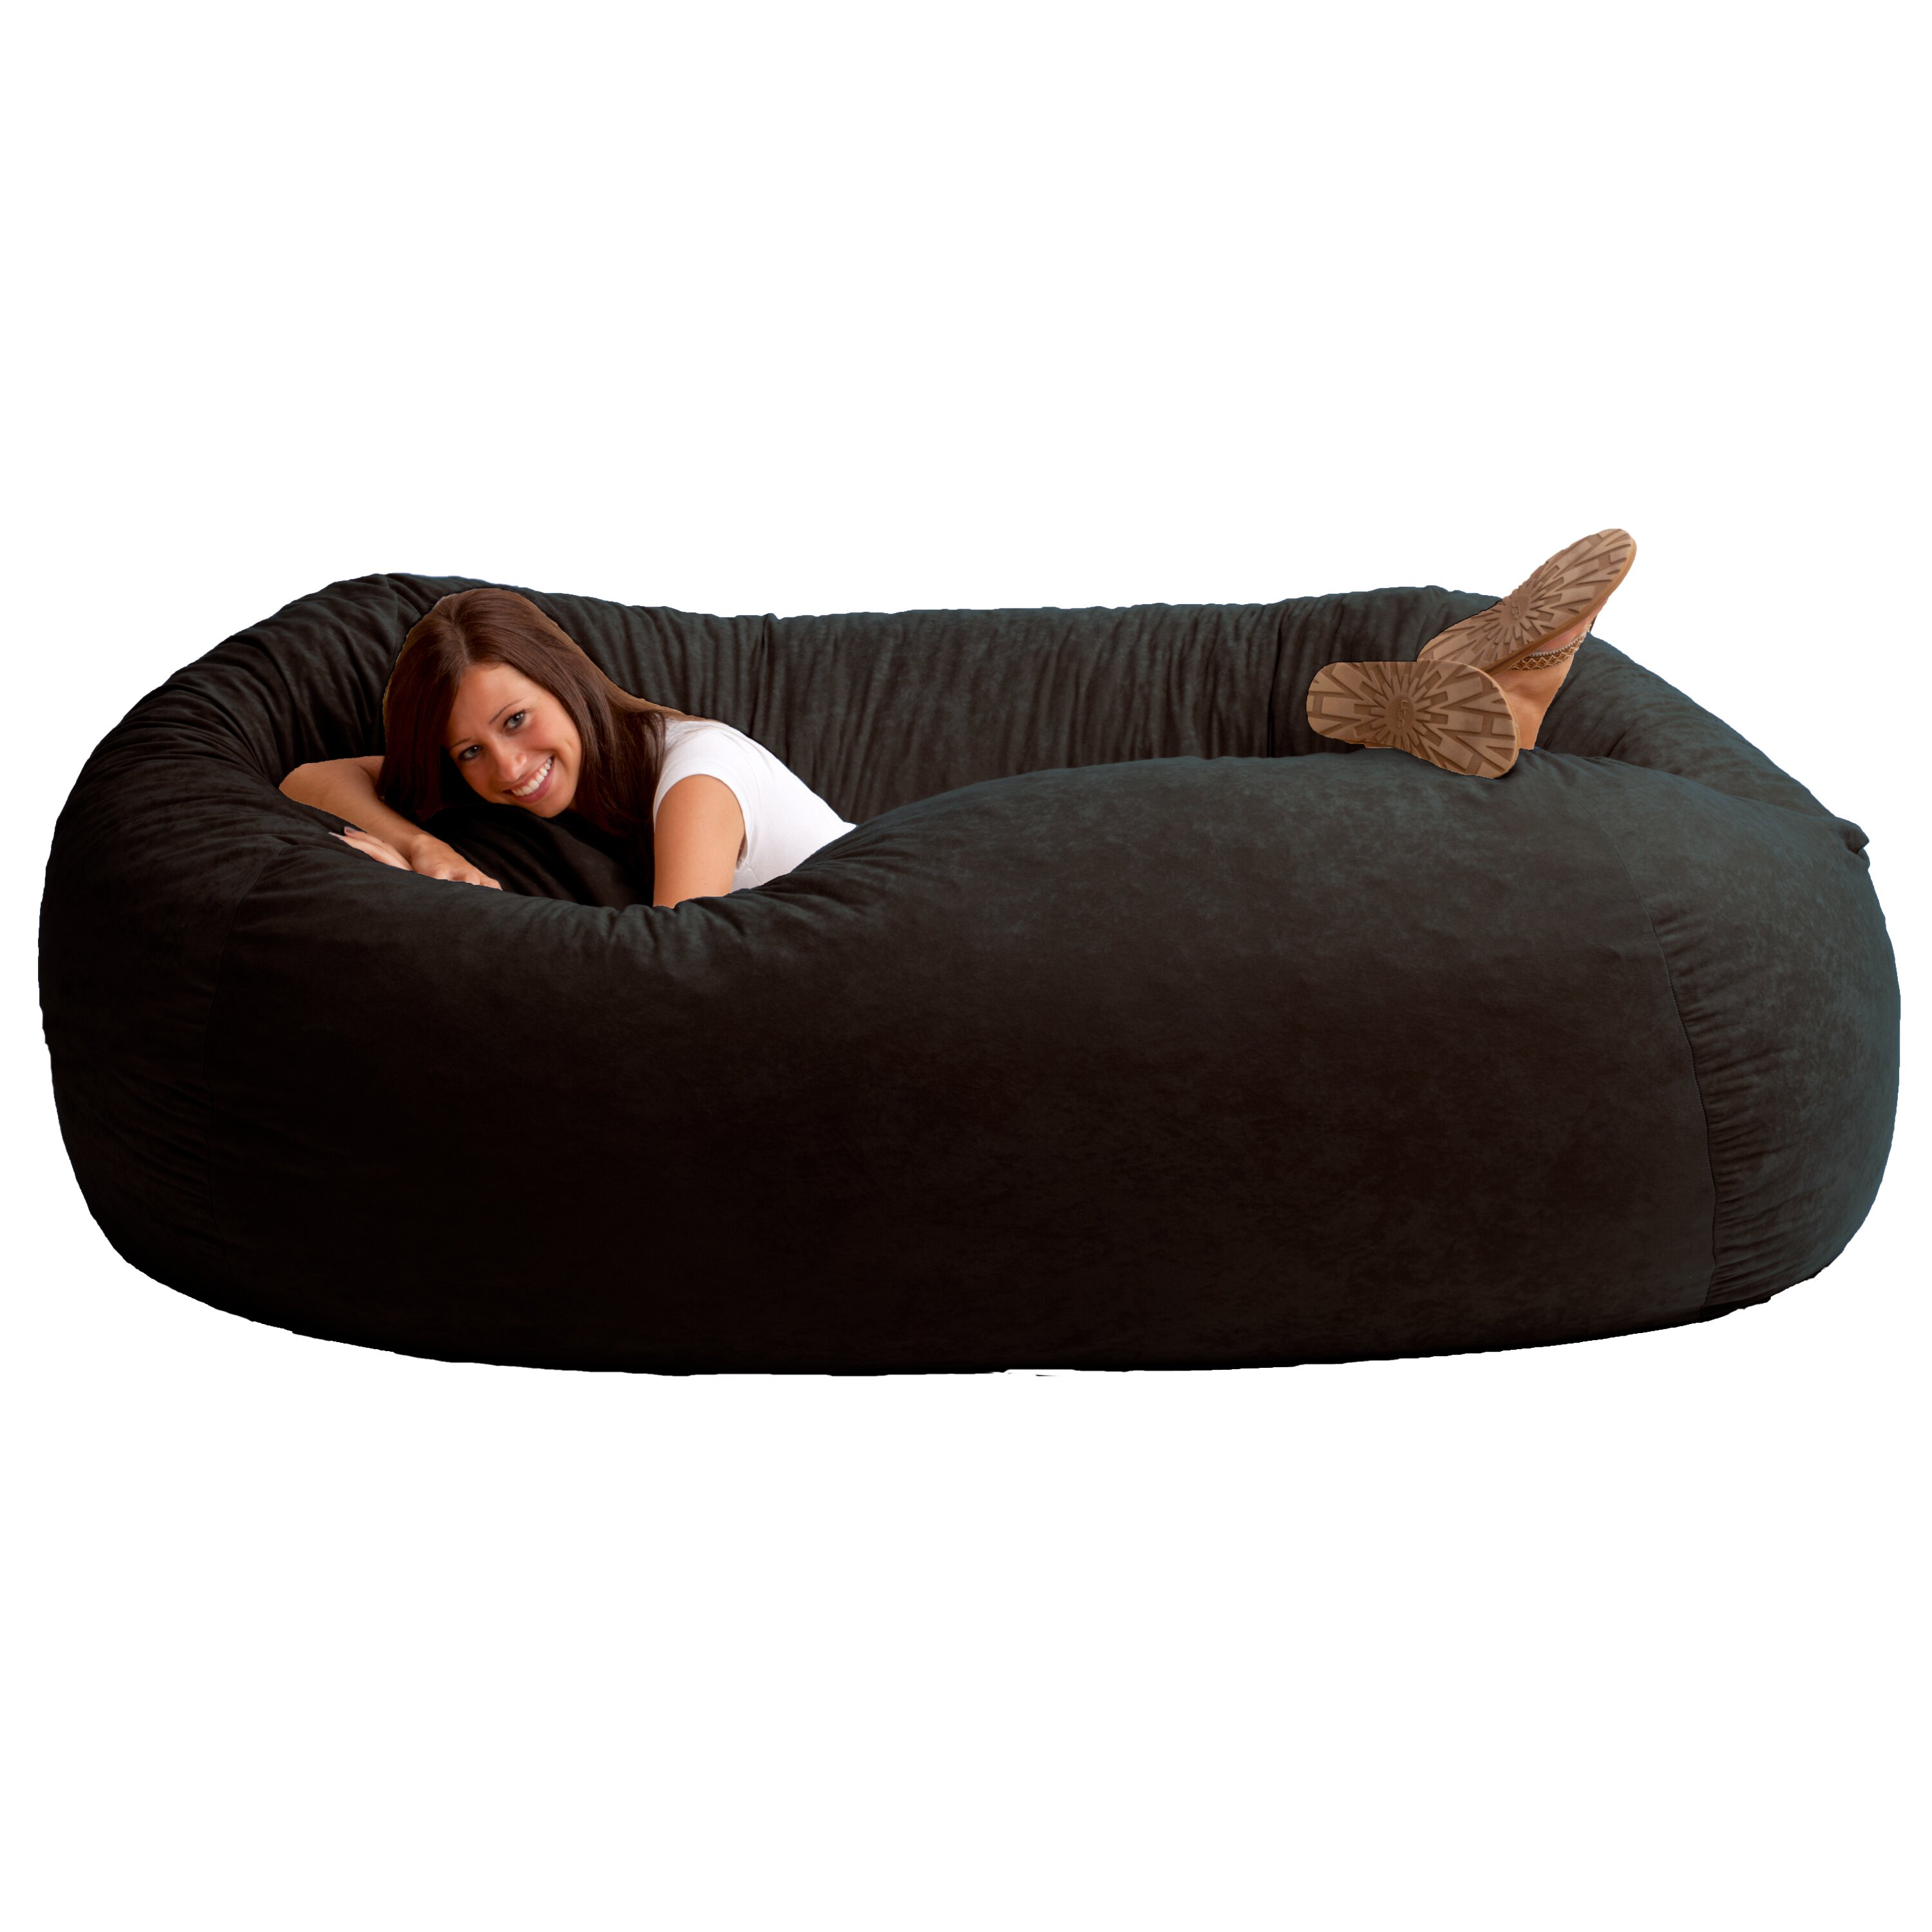 Bean Bag Sofa Bed Review